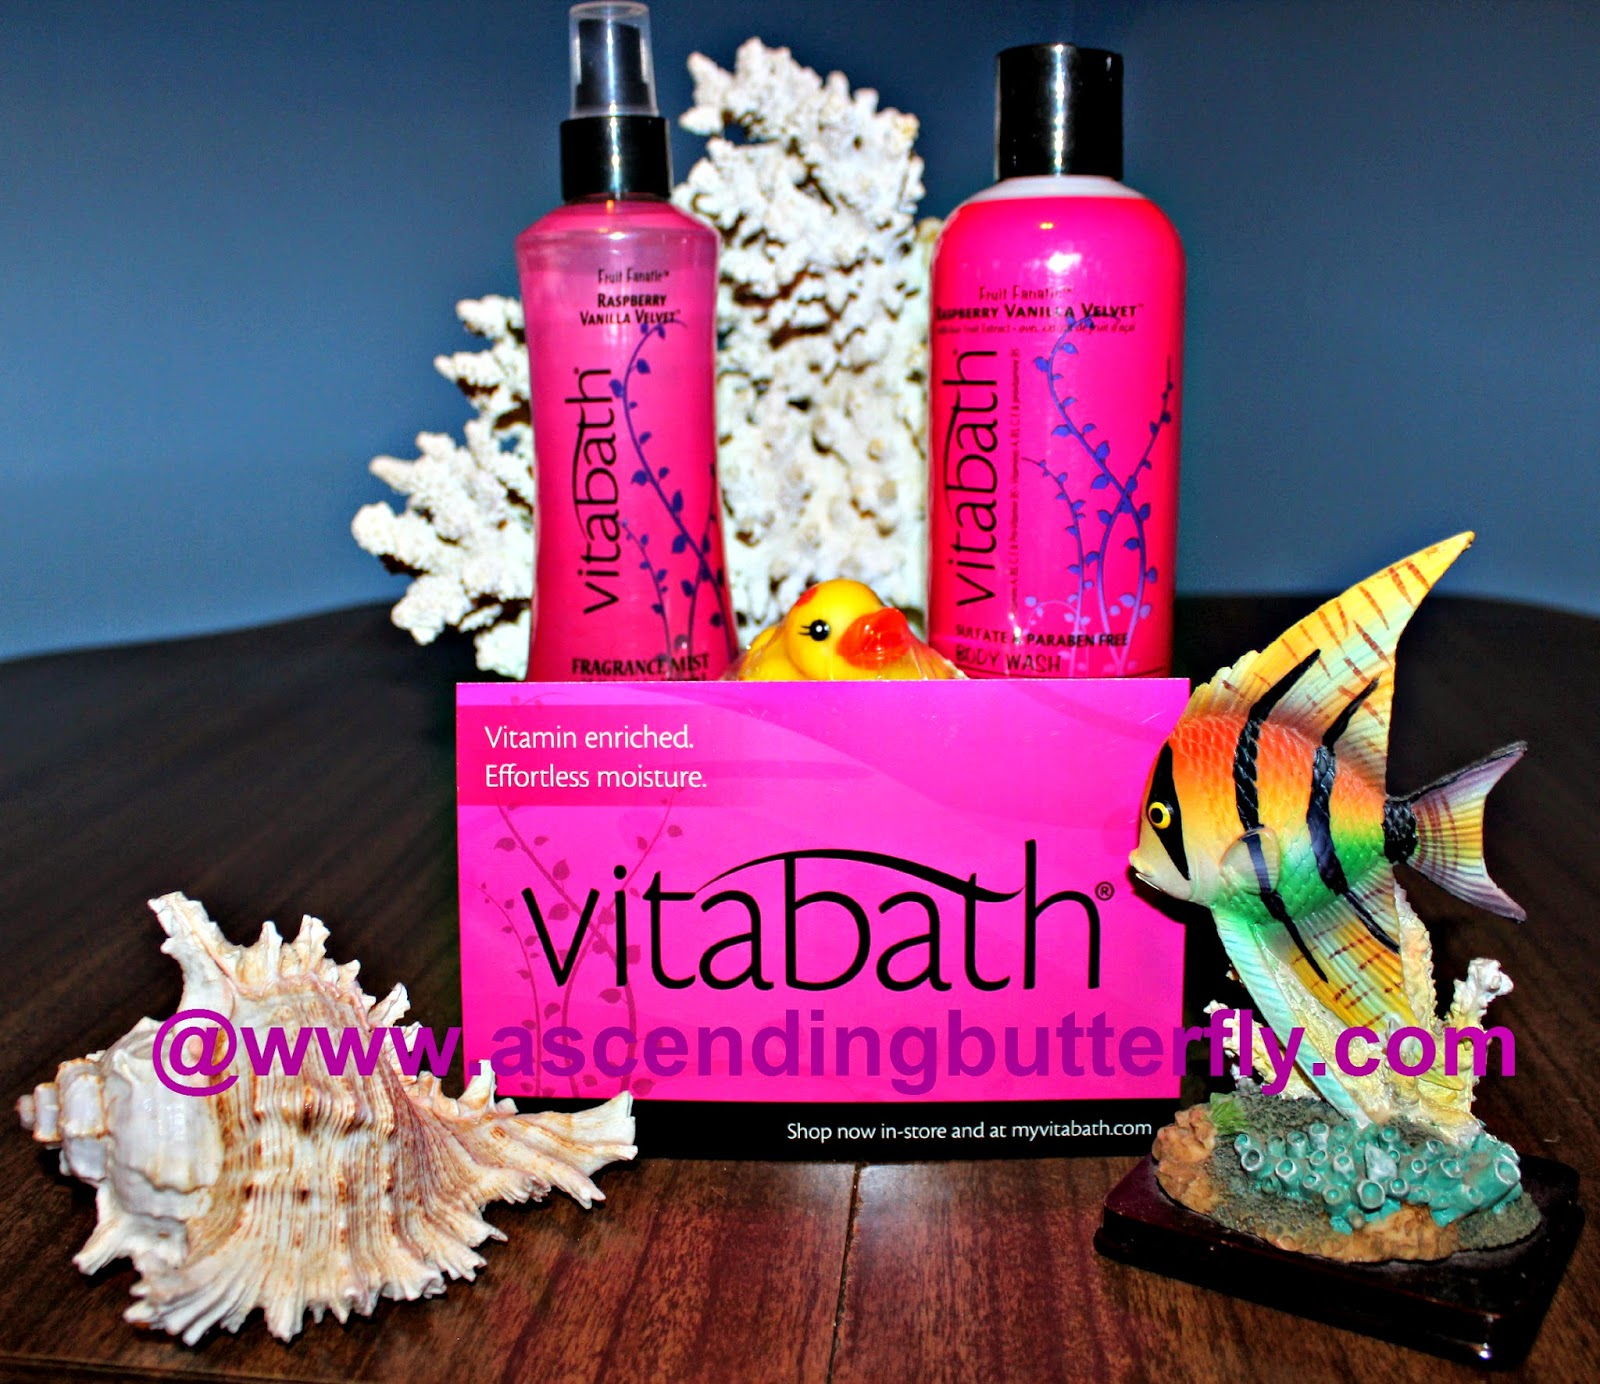 Vitabath #FruityFresh Spring Scents Raspberry Vanilla Velvet Body Wash and Fragrance Mist